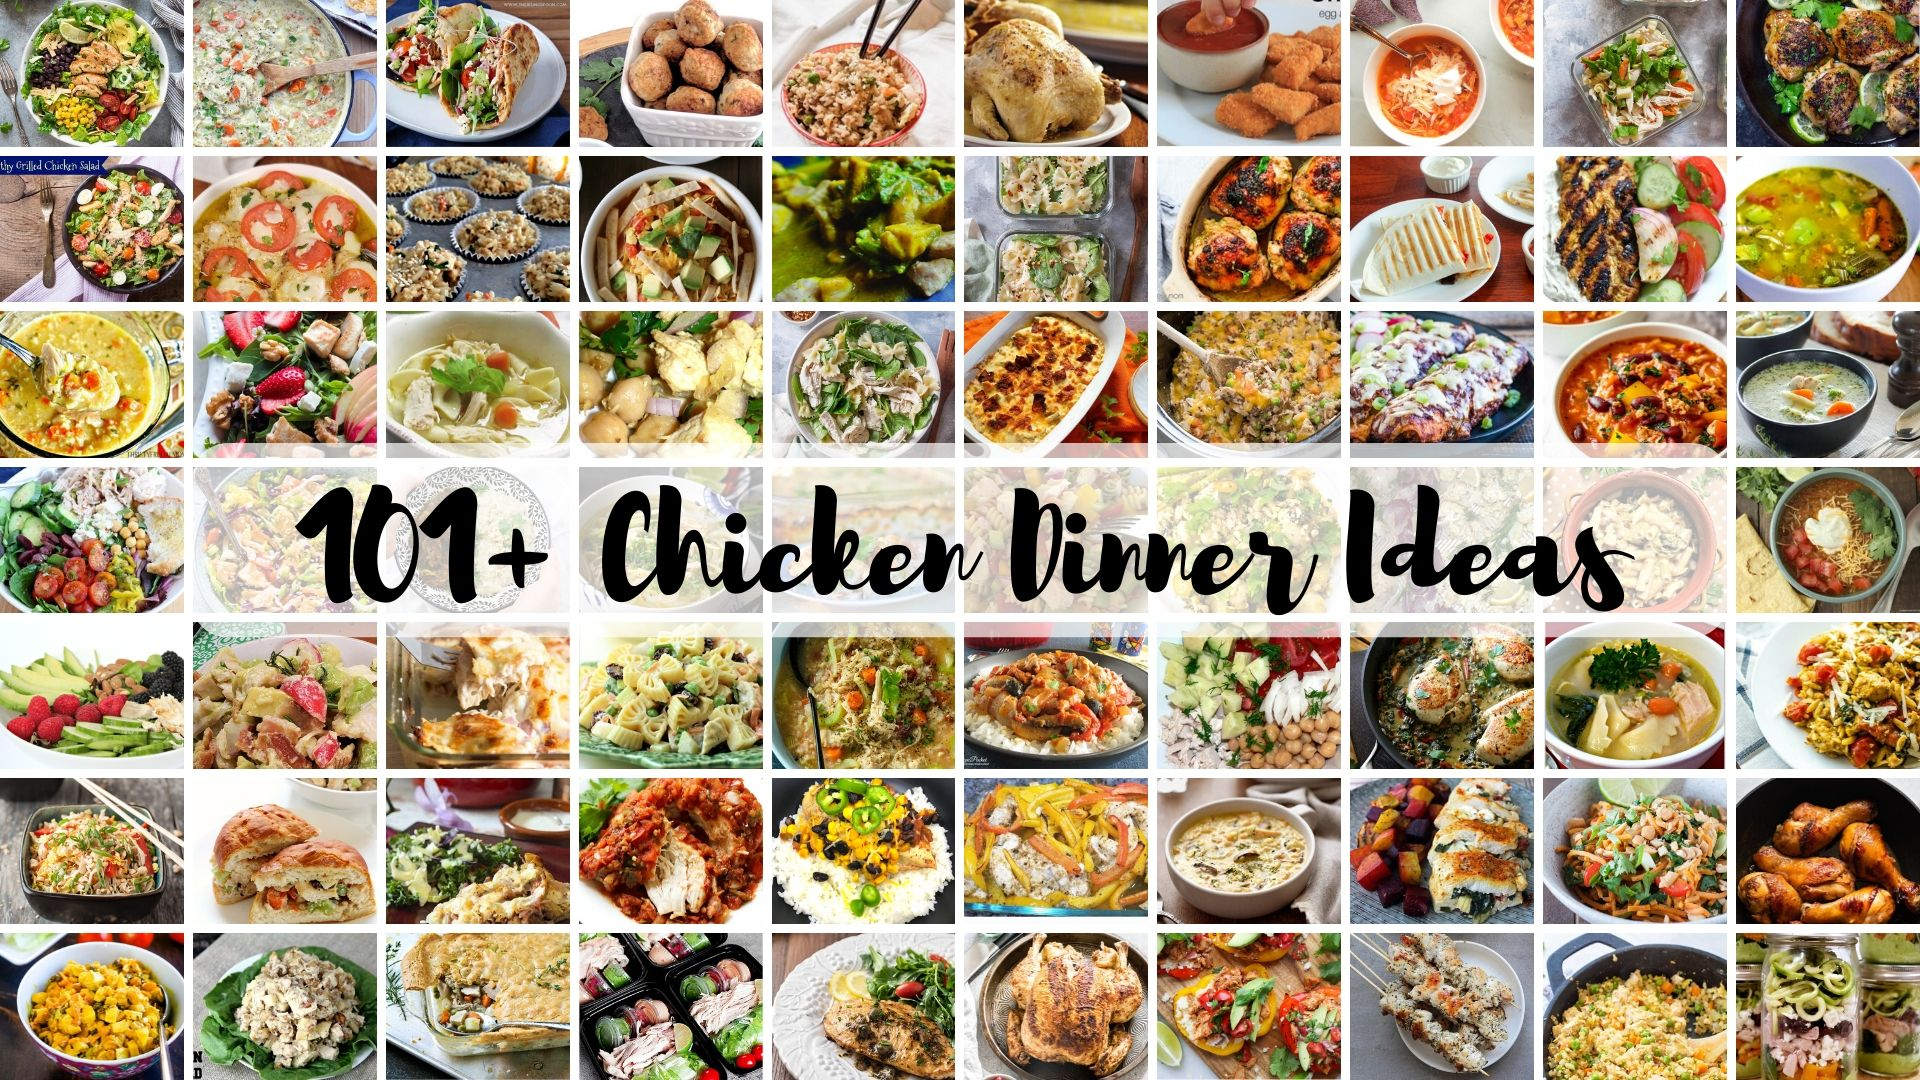 101 Chicken Dinner Ideas | Fourganic Sisters